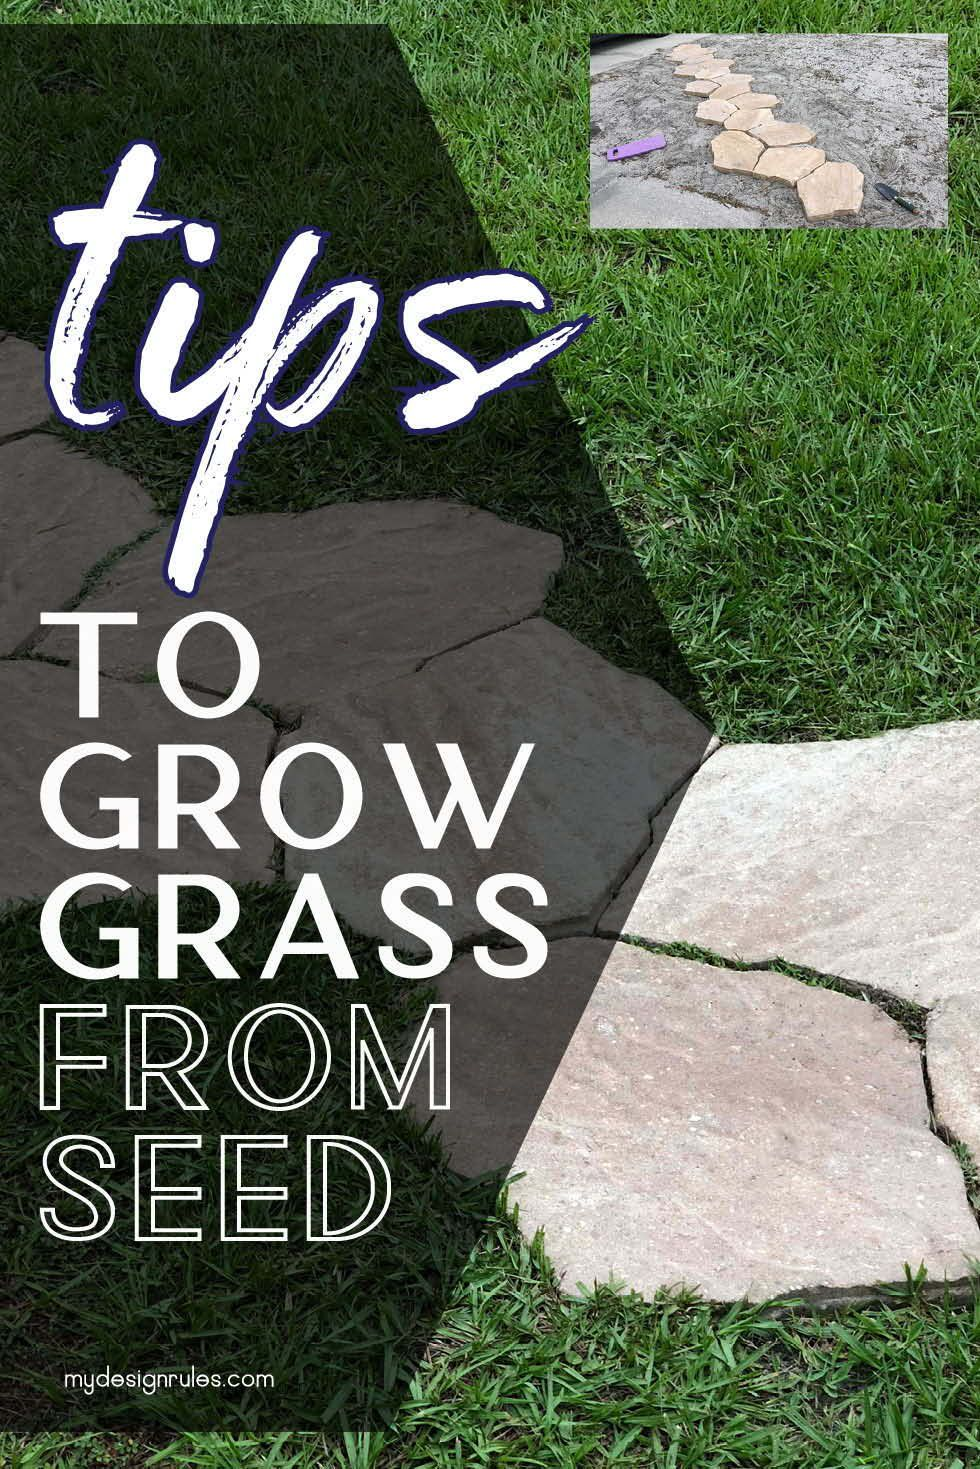 Pin On Landscaping Ideas Lawn Decor Group Board